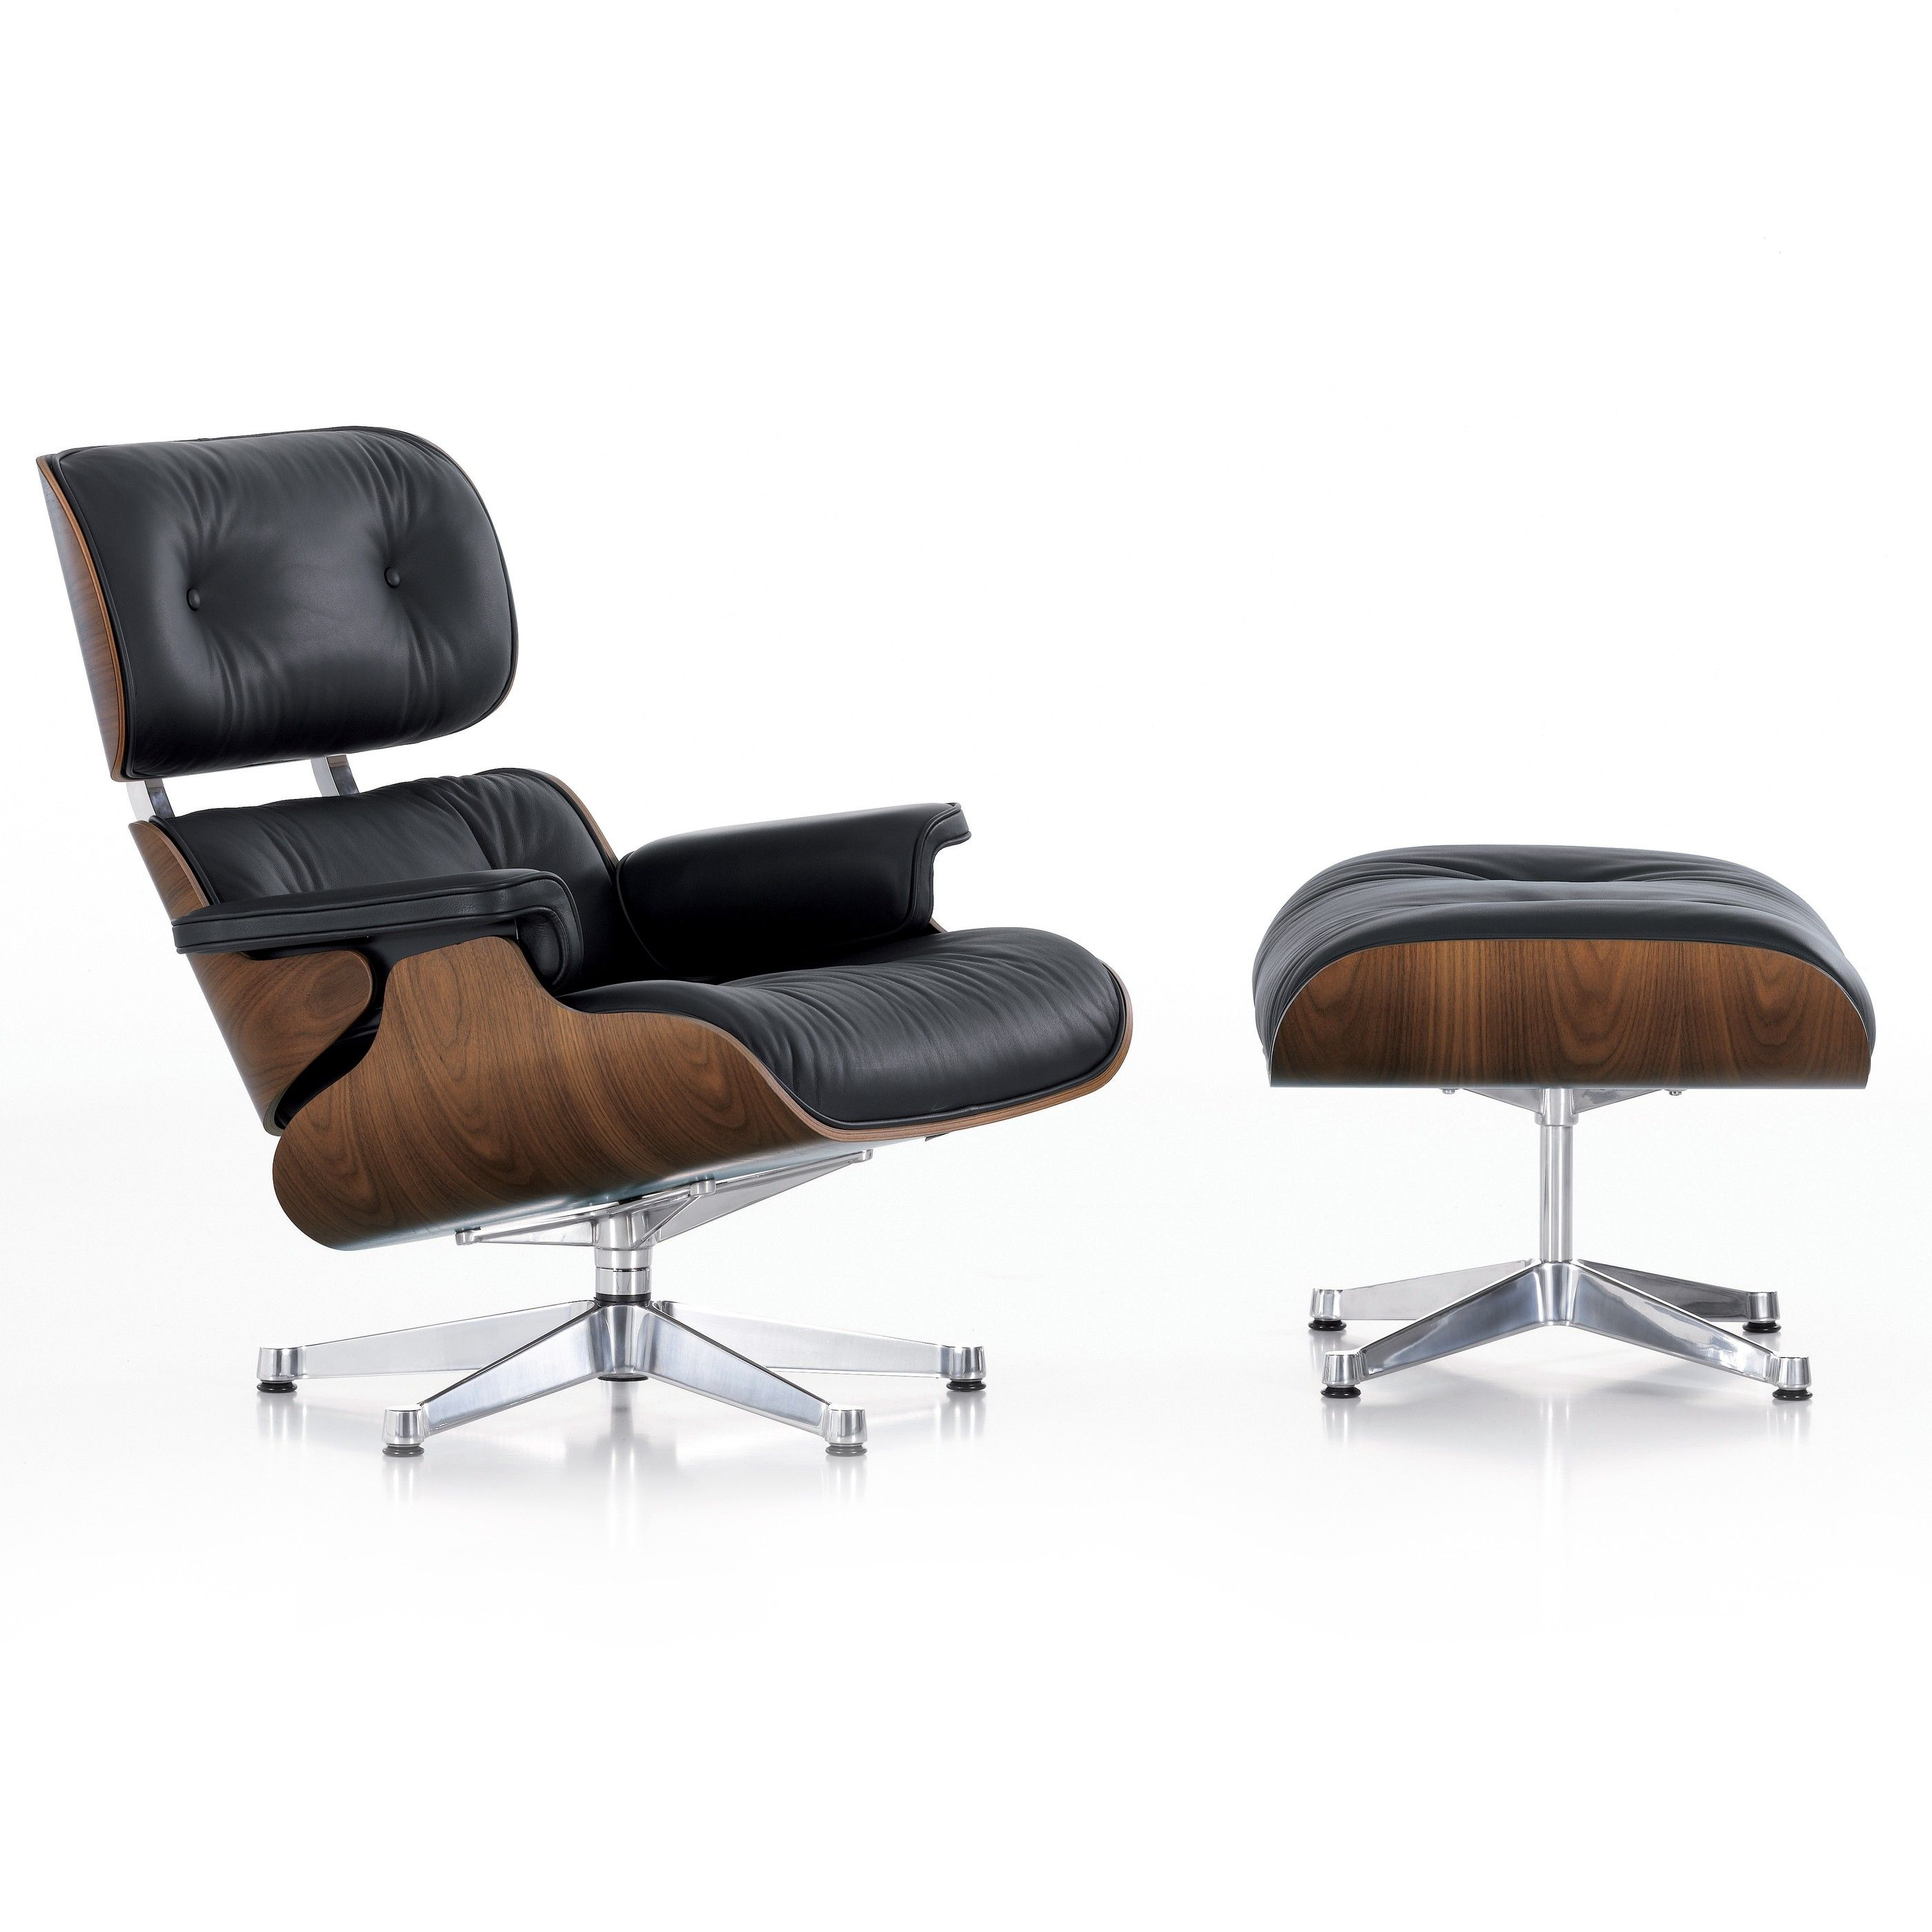 vitra eames lounge chair met ottoman fauteuil nieuwe afmetingen walnotenhout flinders. Black Bedroom Furniture Sets. Home Design Ideas